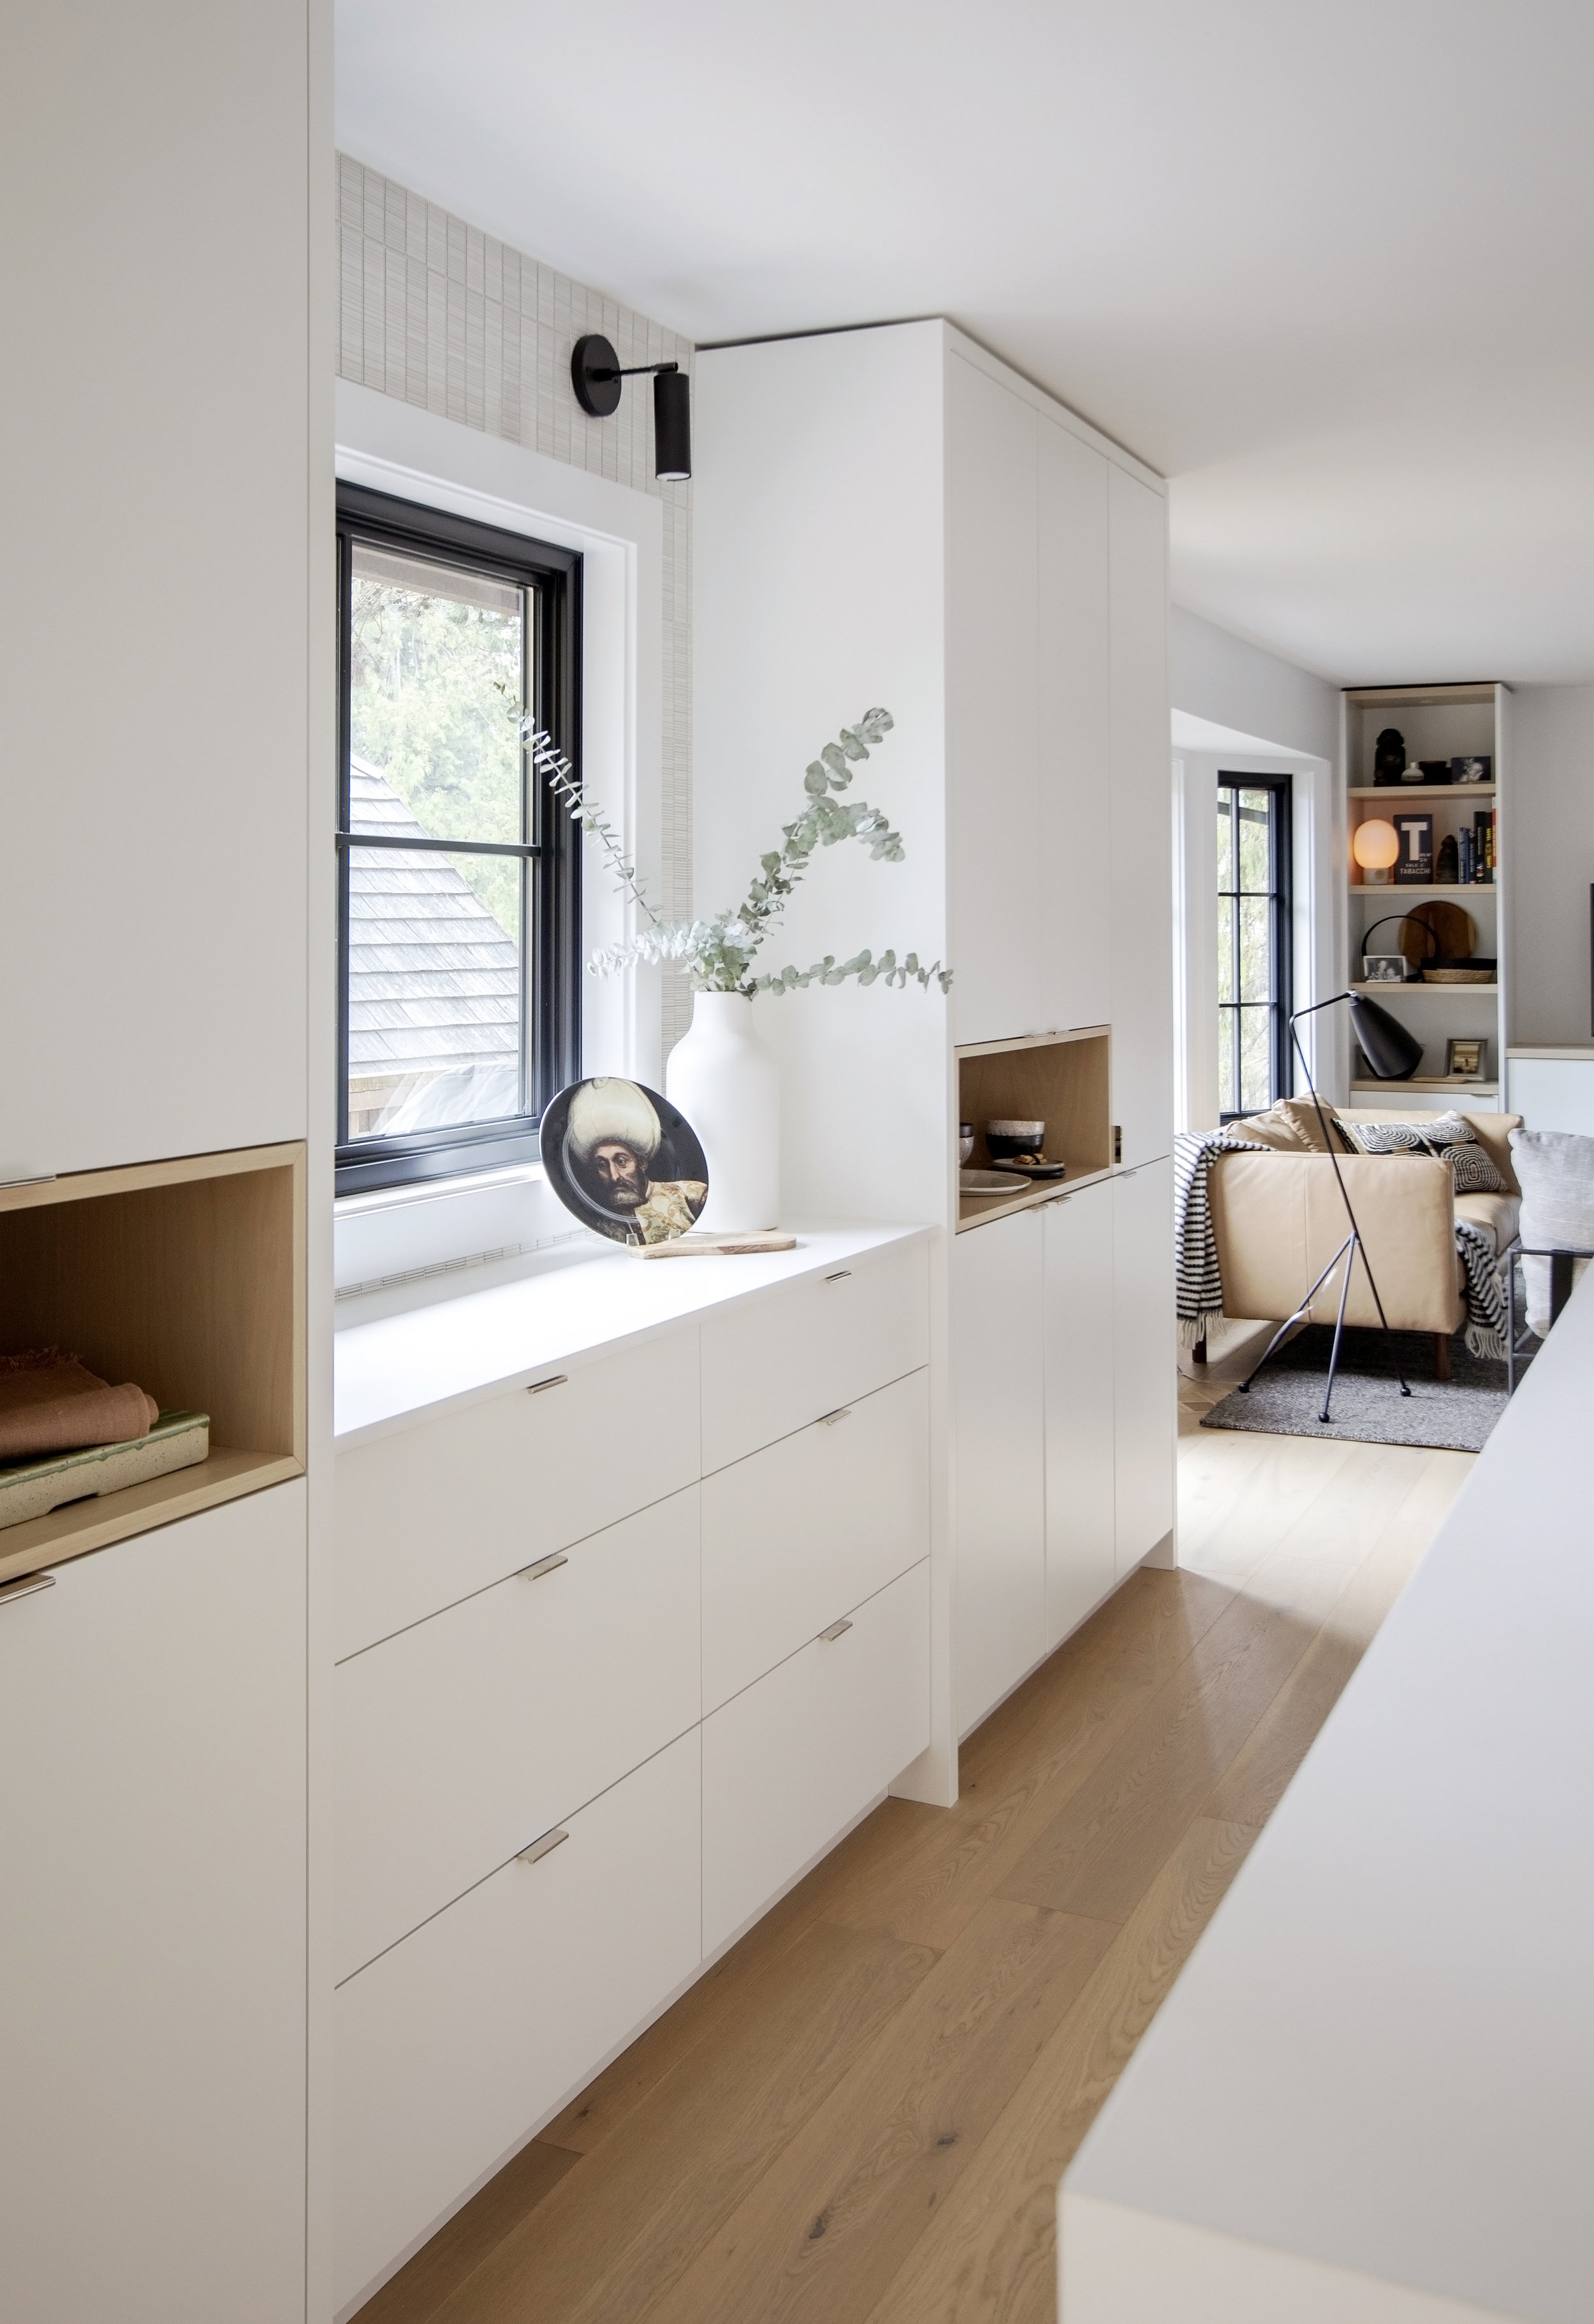 The kitchen of Alderfield place; brightly lit, white counter tops and drawers offer tons of bright cheeriness.